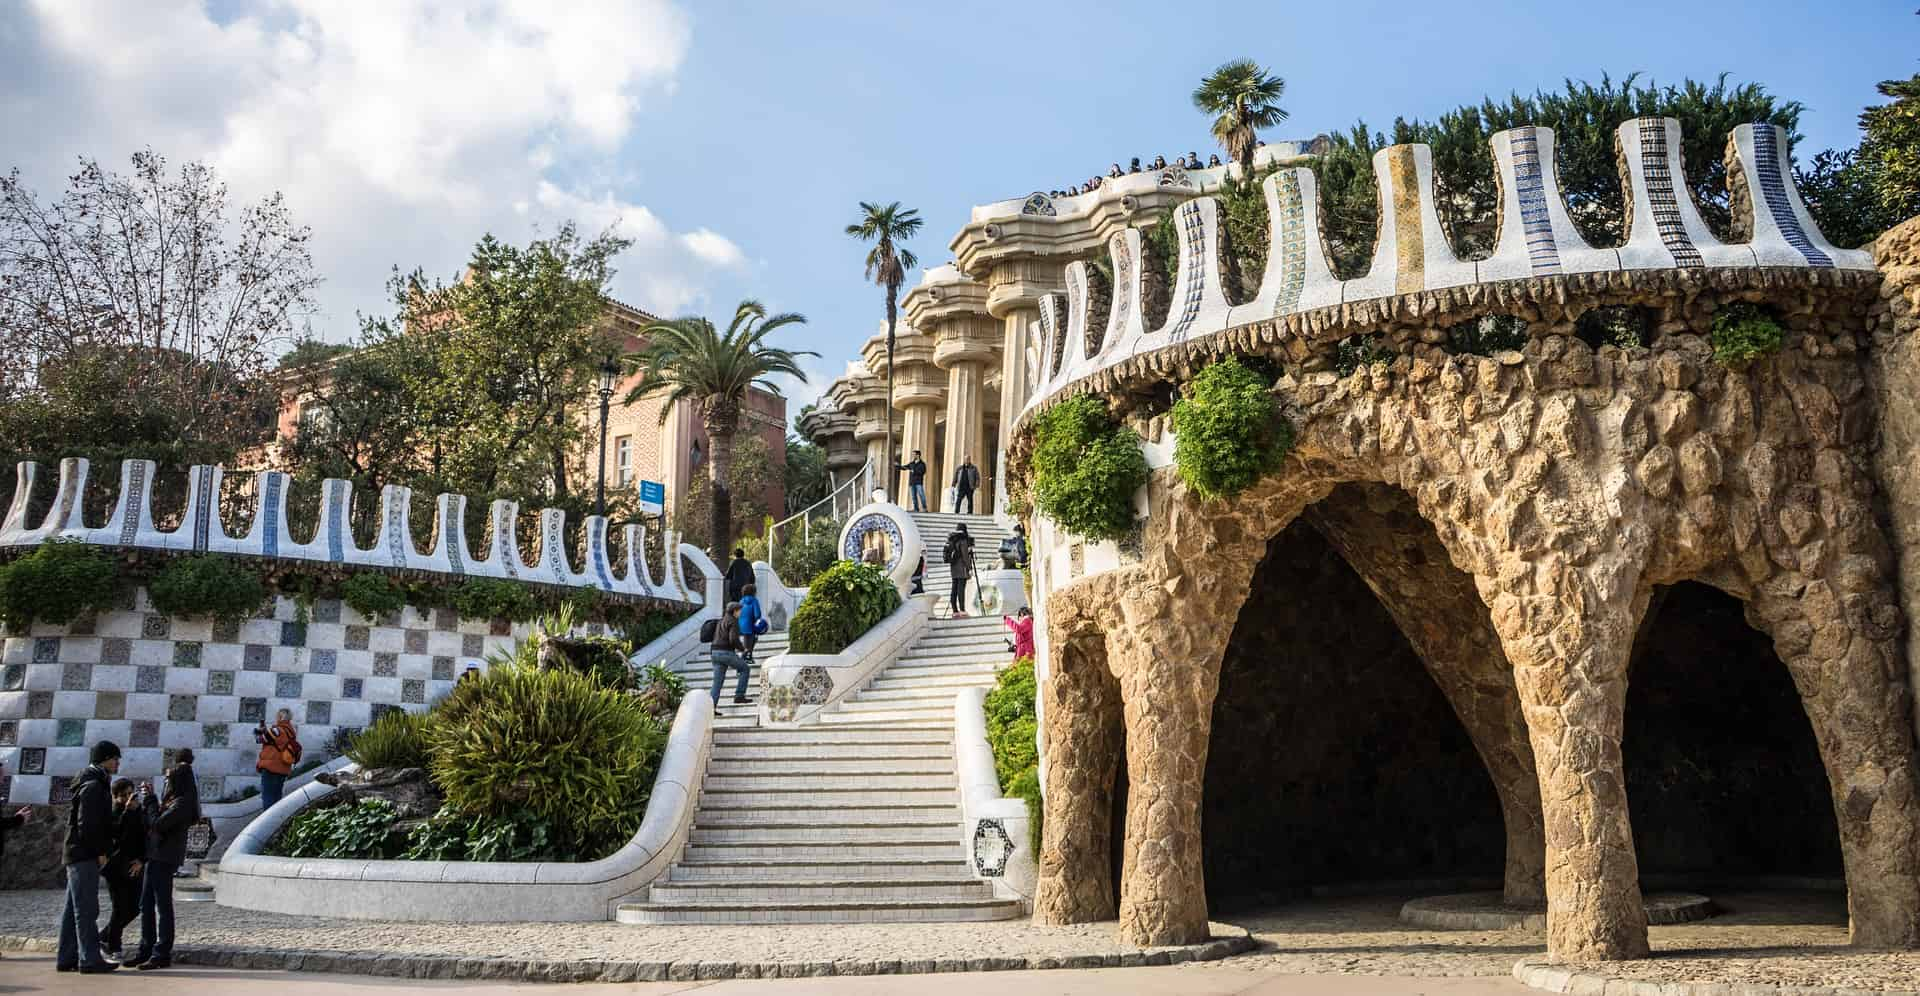 Guell Ppark - Barcelona Travel Destination